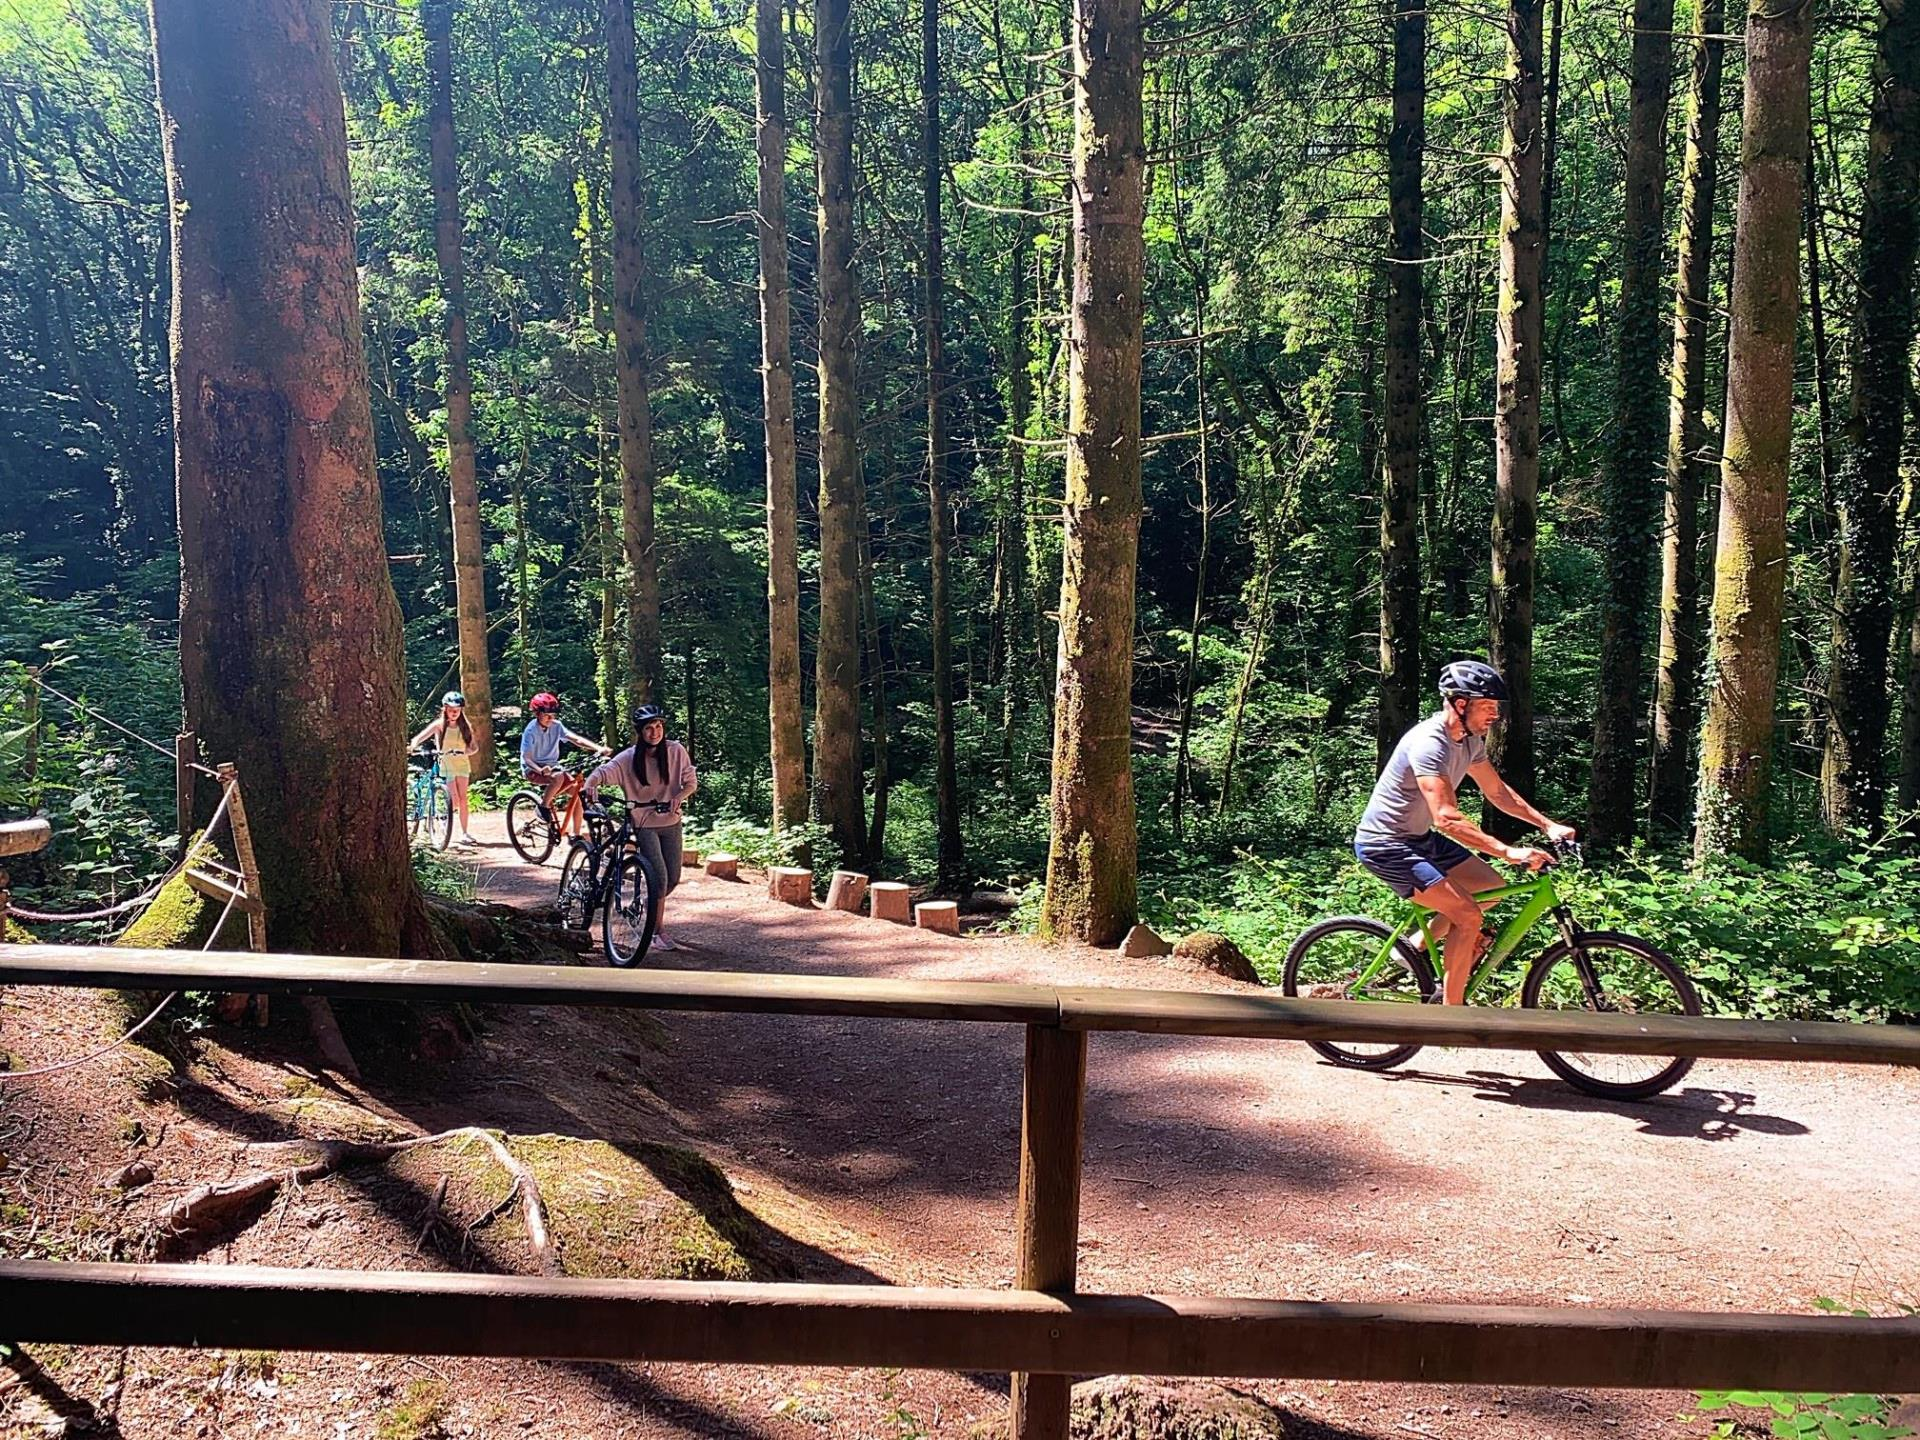 Cycle the Nature Trails across the 500 acre site